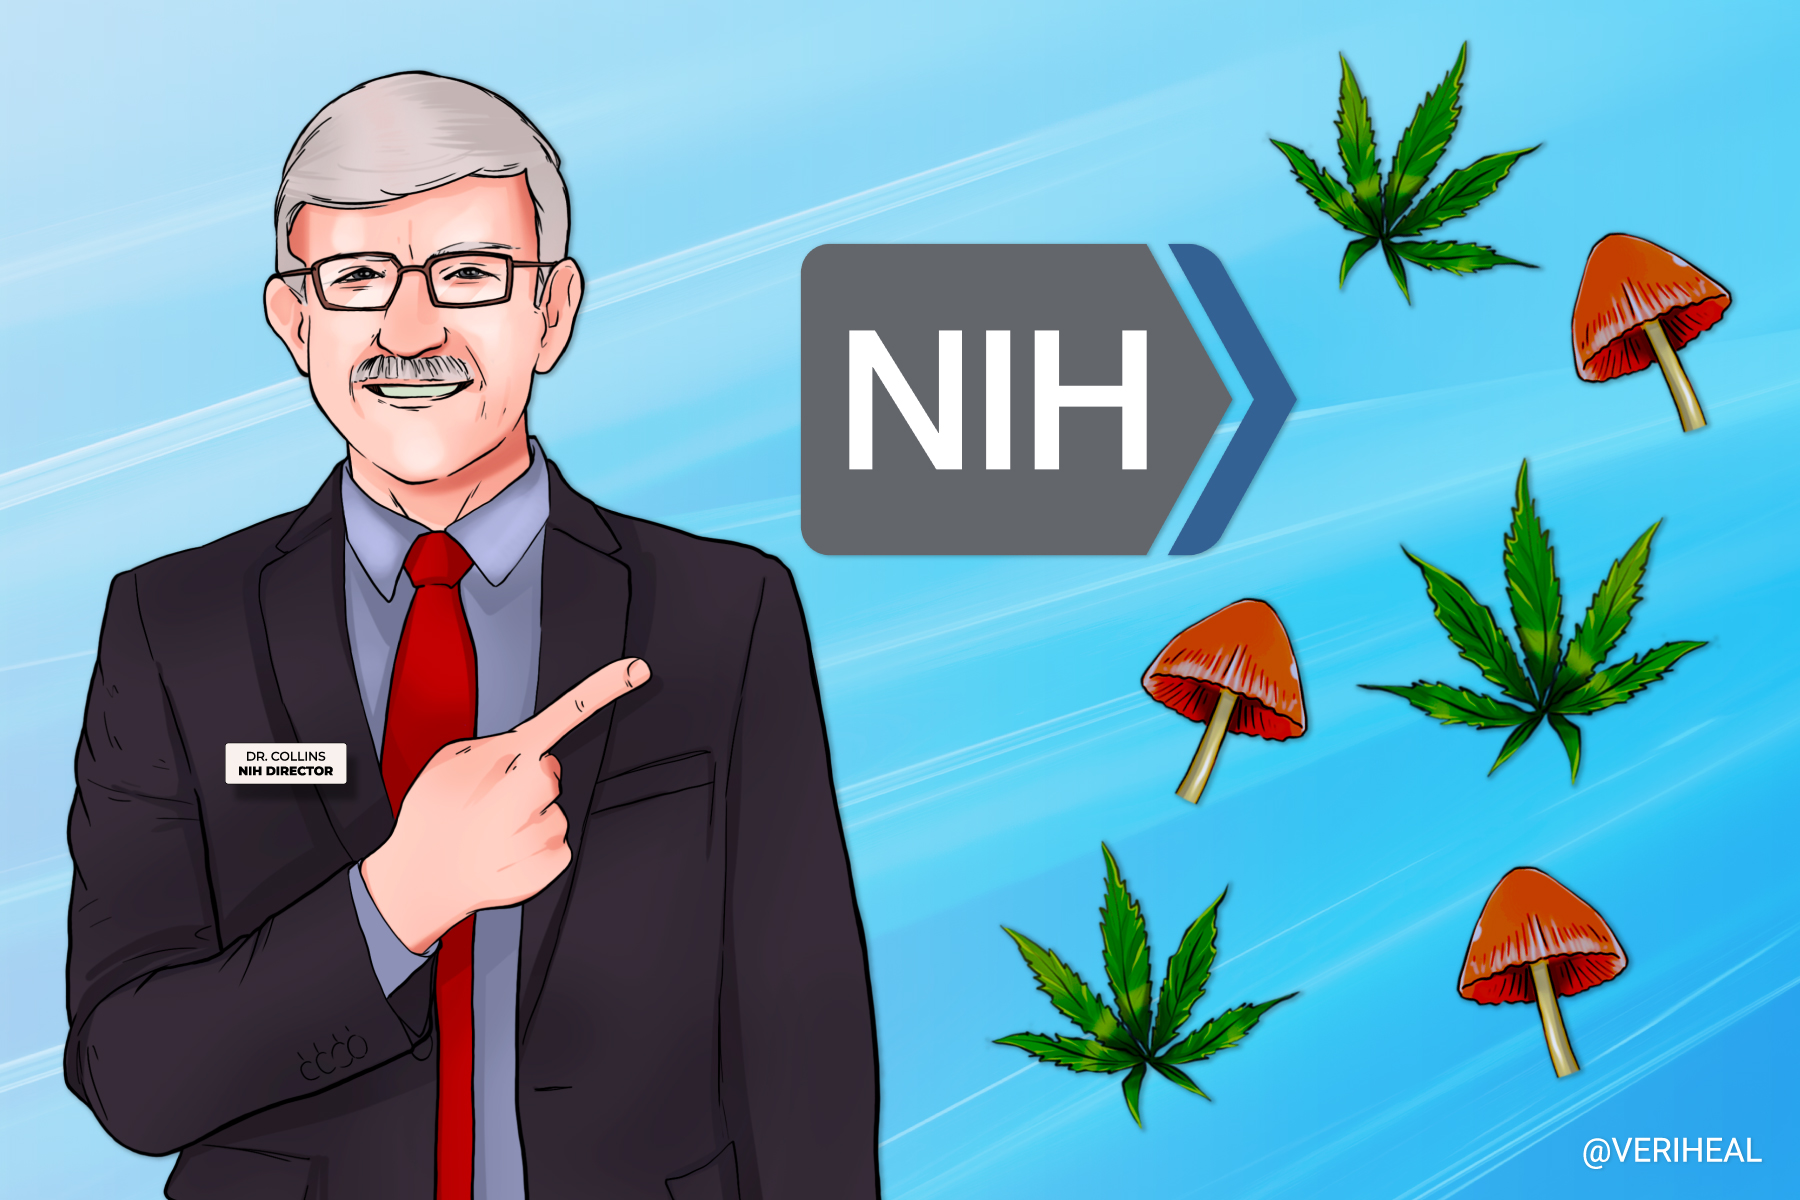 What's Next for the NIH When it Comes to Psychedelics?